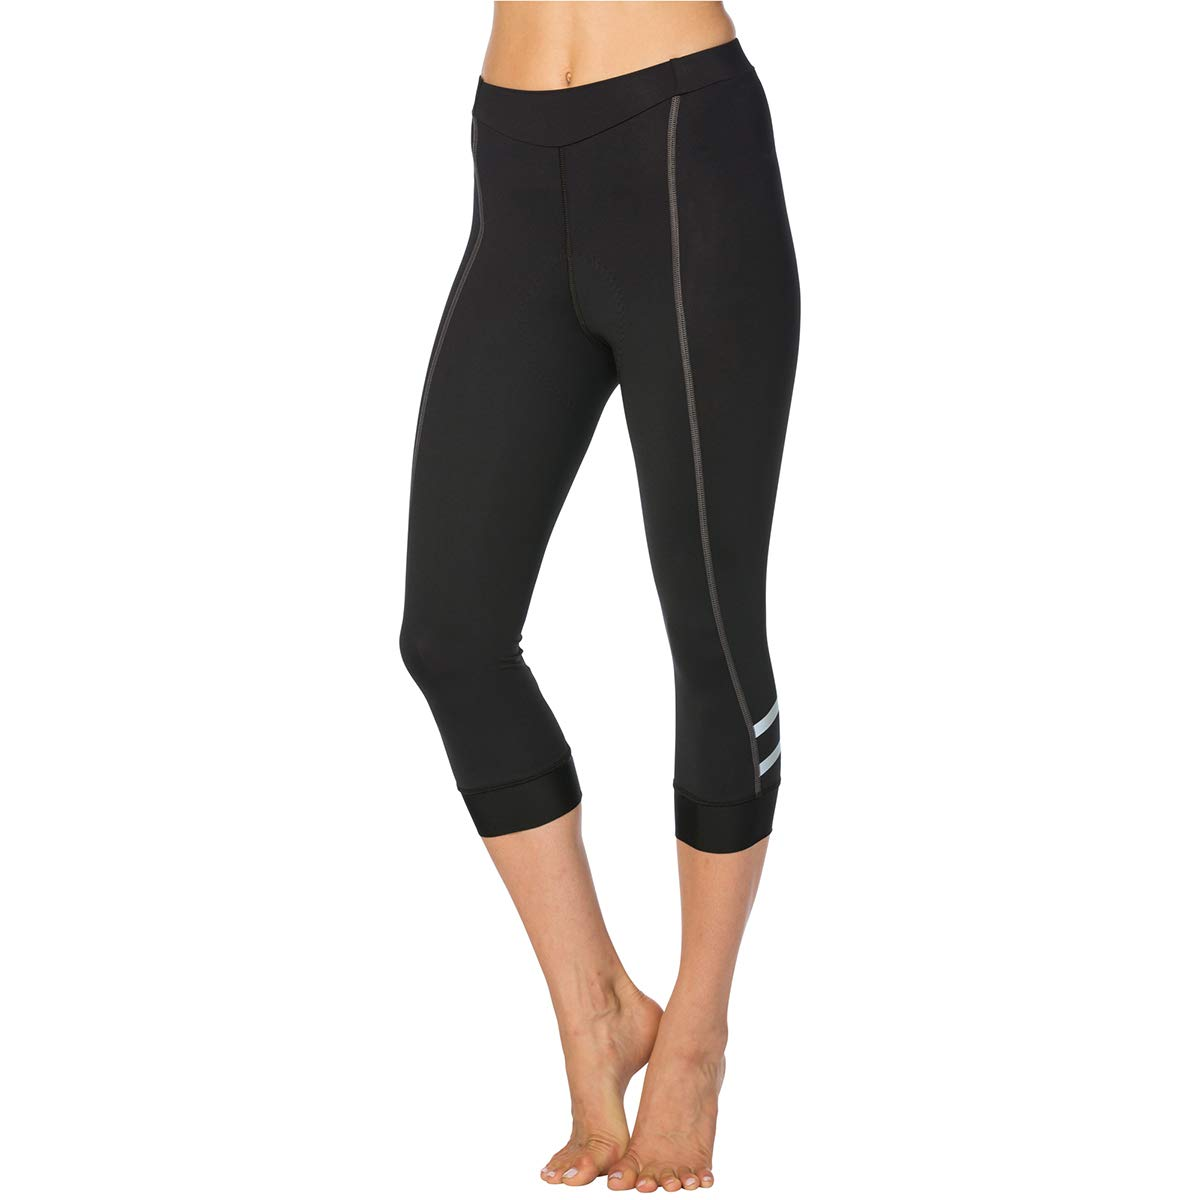 Terry Women's Cycling Bella Prima Knicker Best-in-Class Bicycling Performance Bottom That Extends Below The Knee – Black/Charcoal – Small